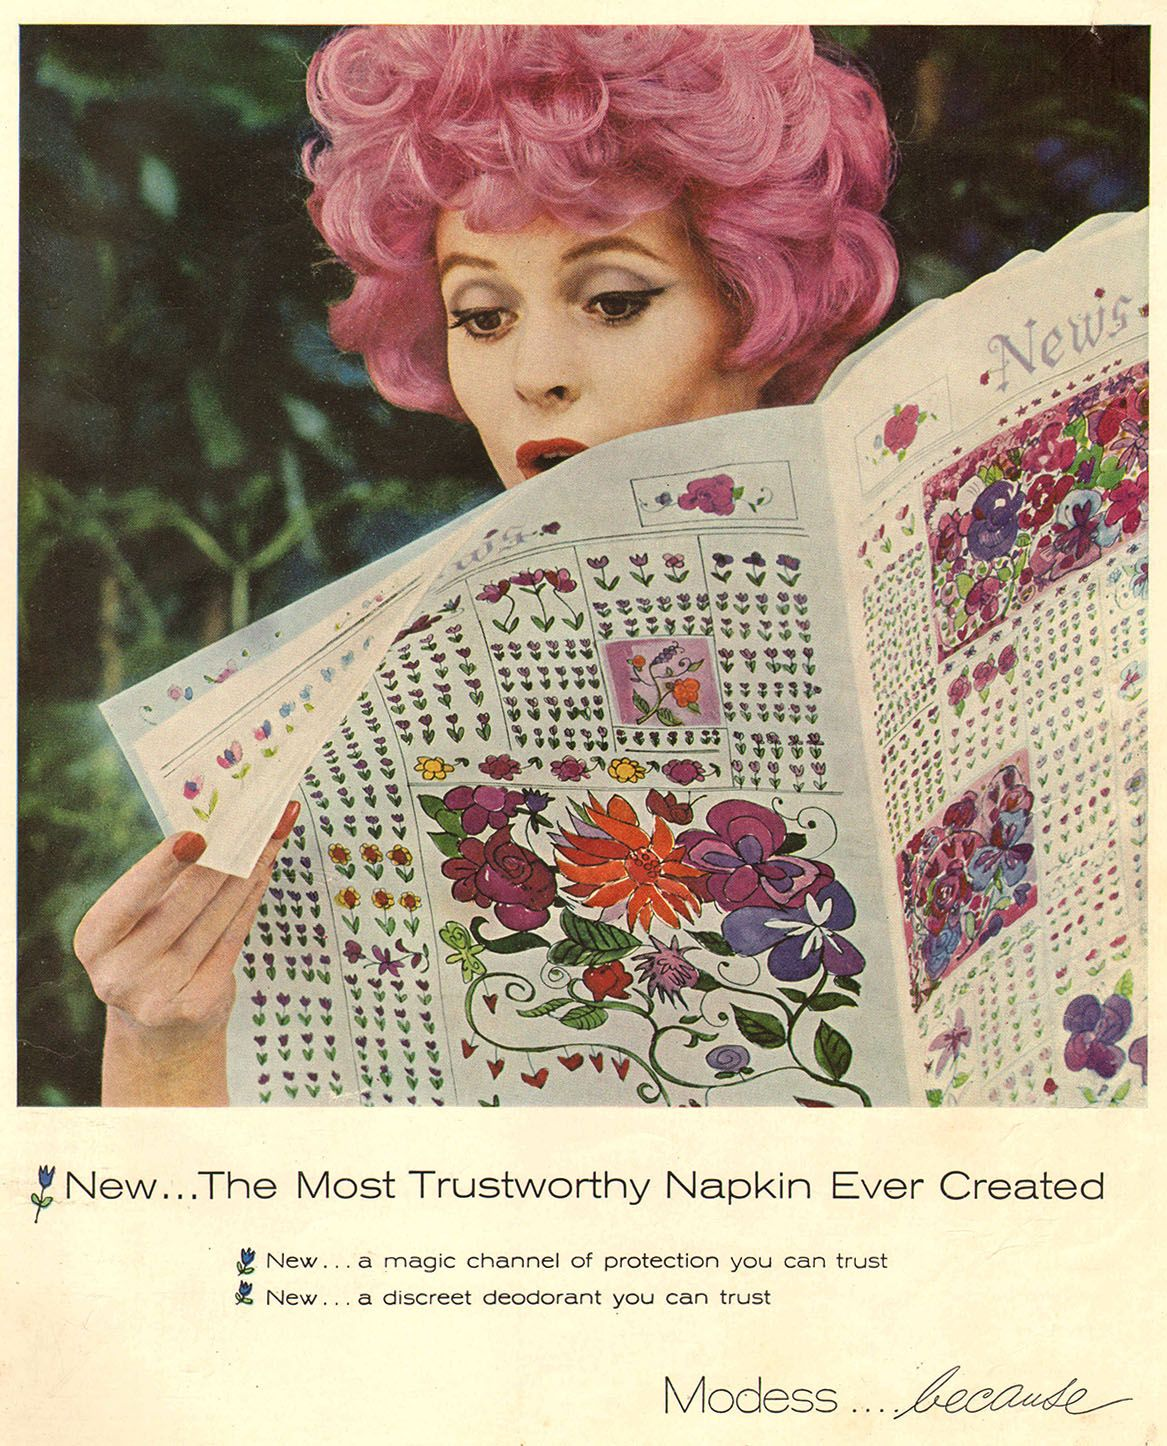 modess feminine products pink hair 1960 | ladies home